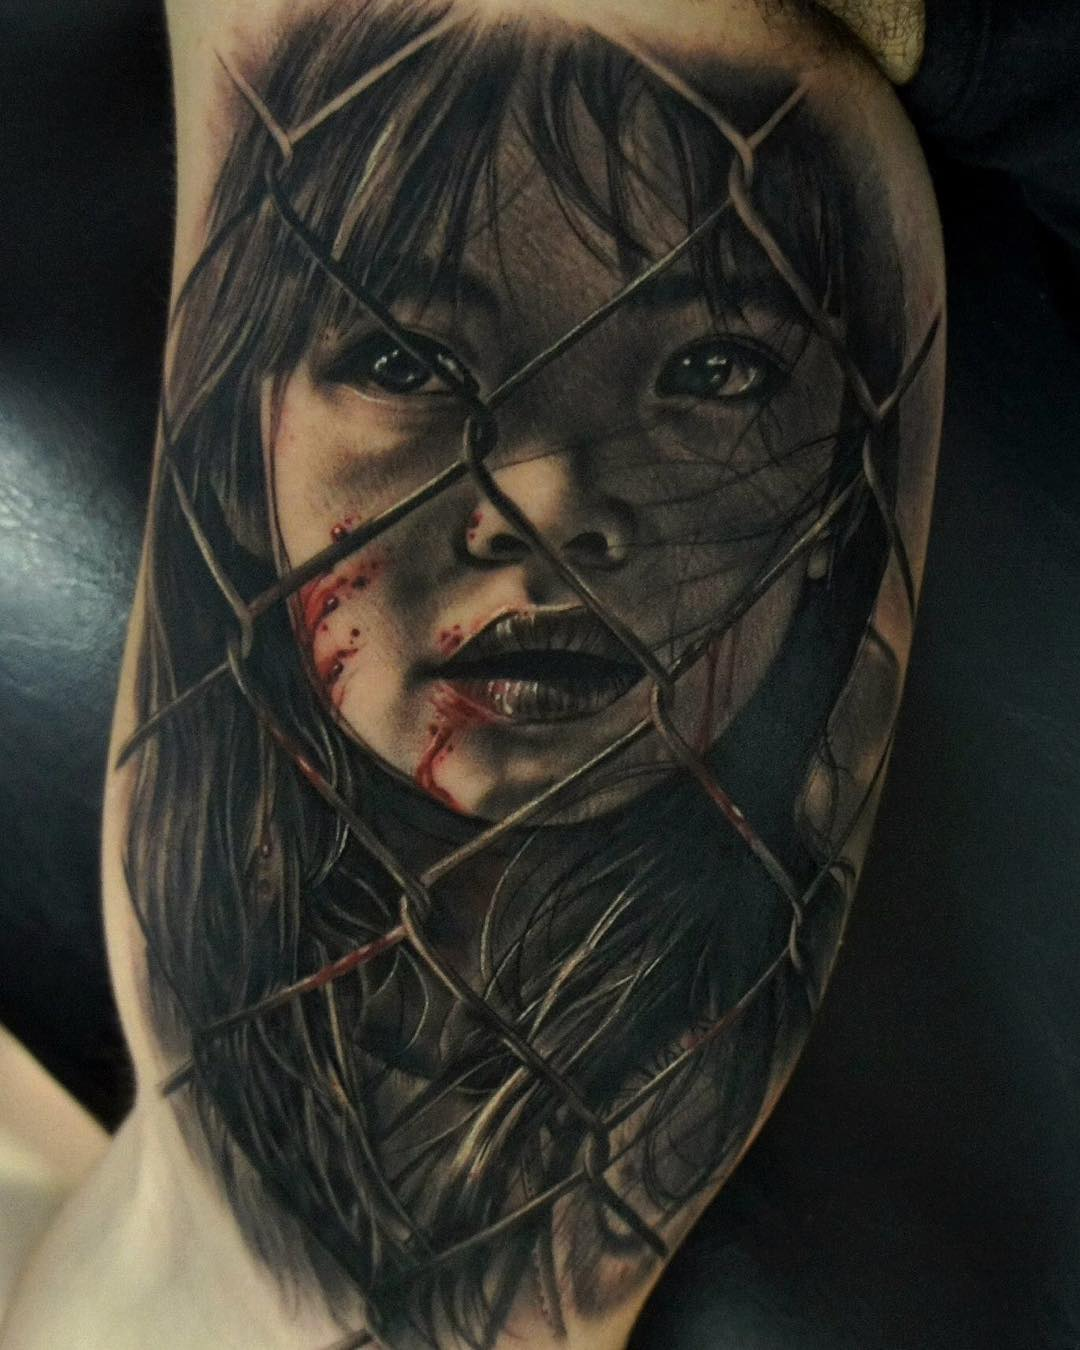 the black and grey portrait of a girl behind the fence - realistic tattoo